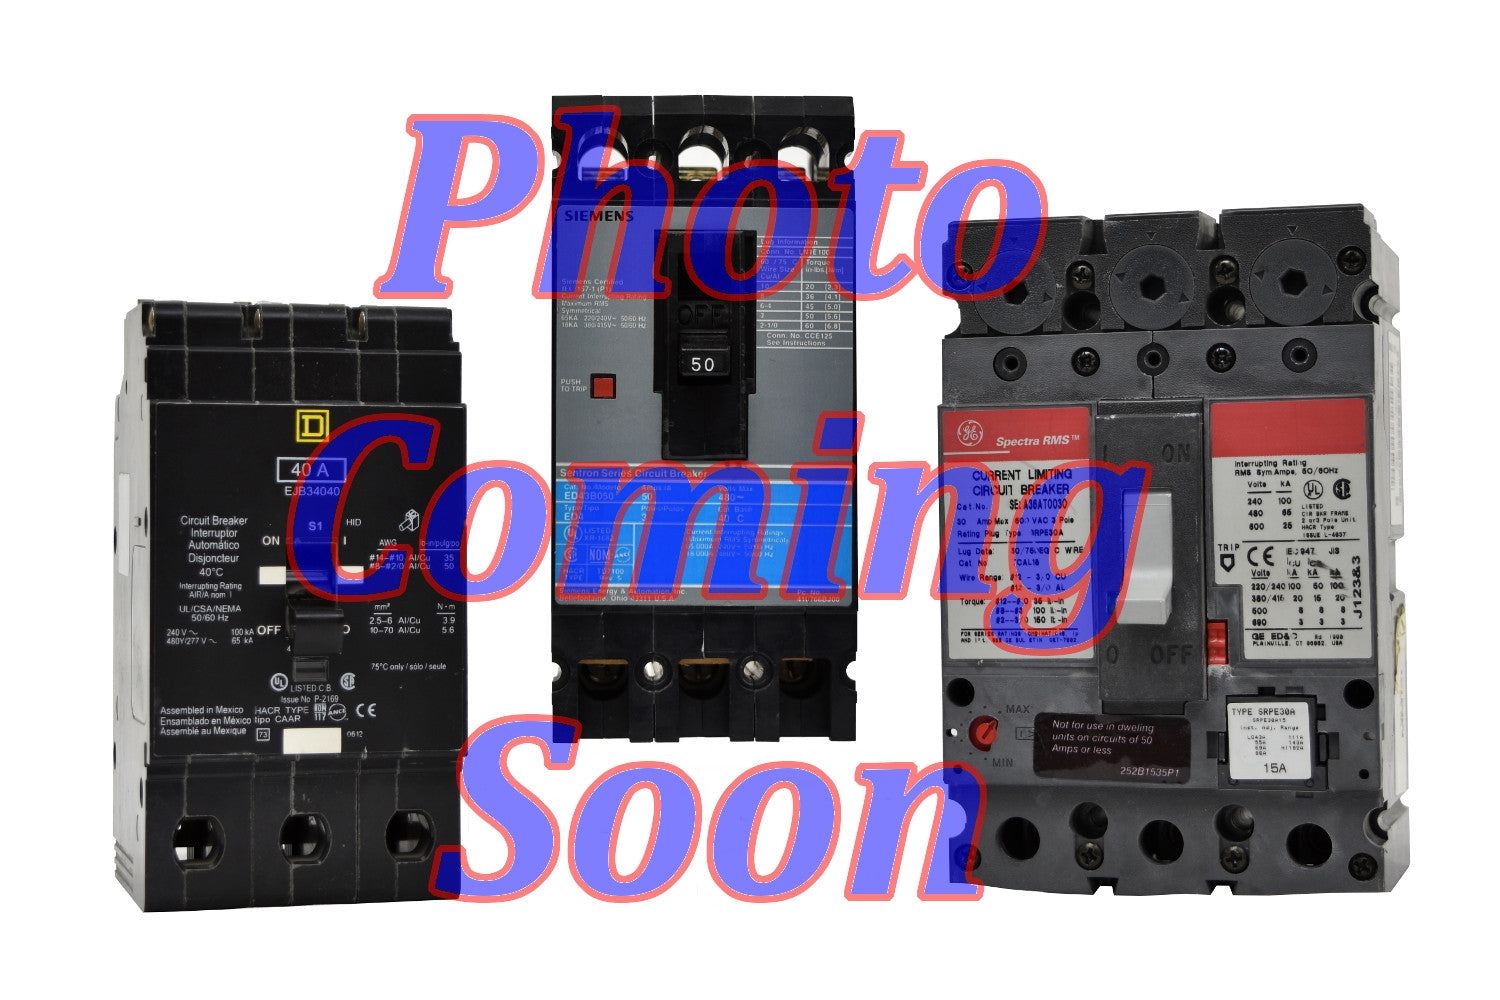 General Electric FCN326TE030R1 Circuit Breakers